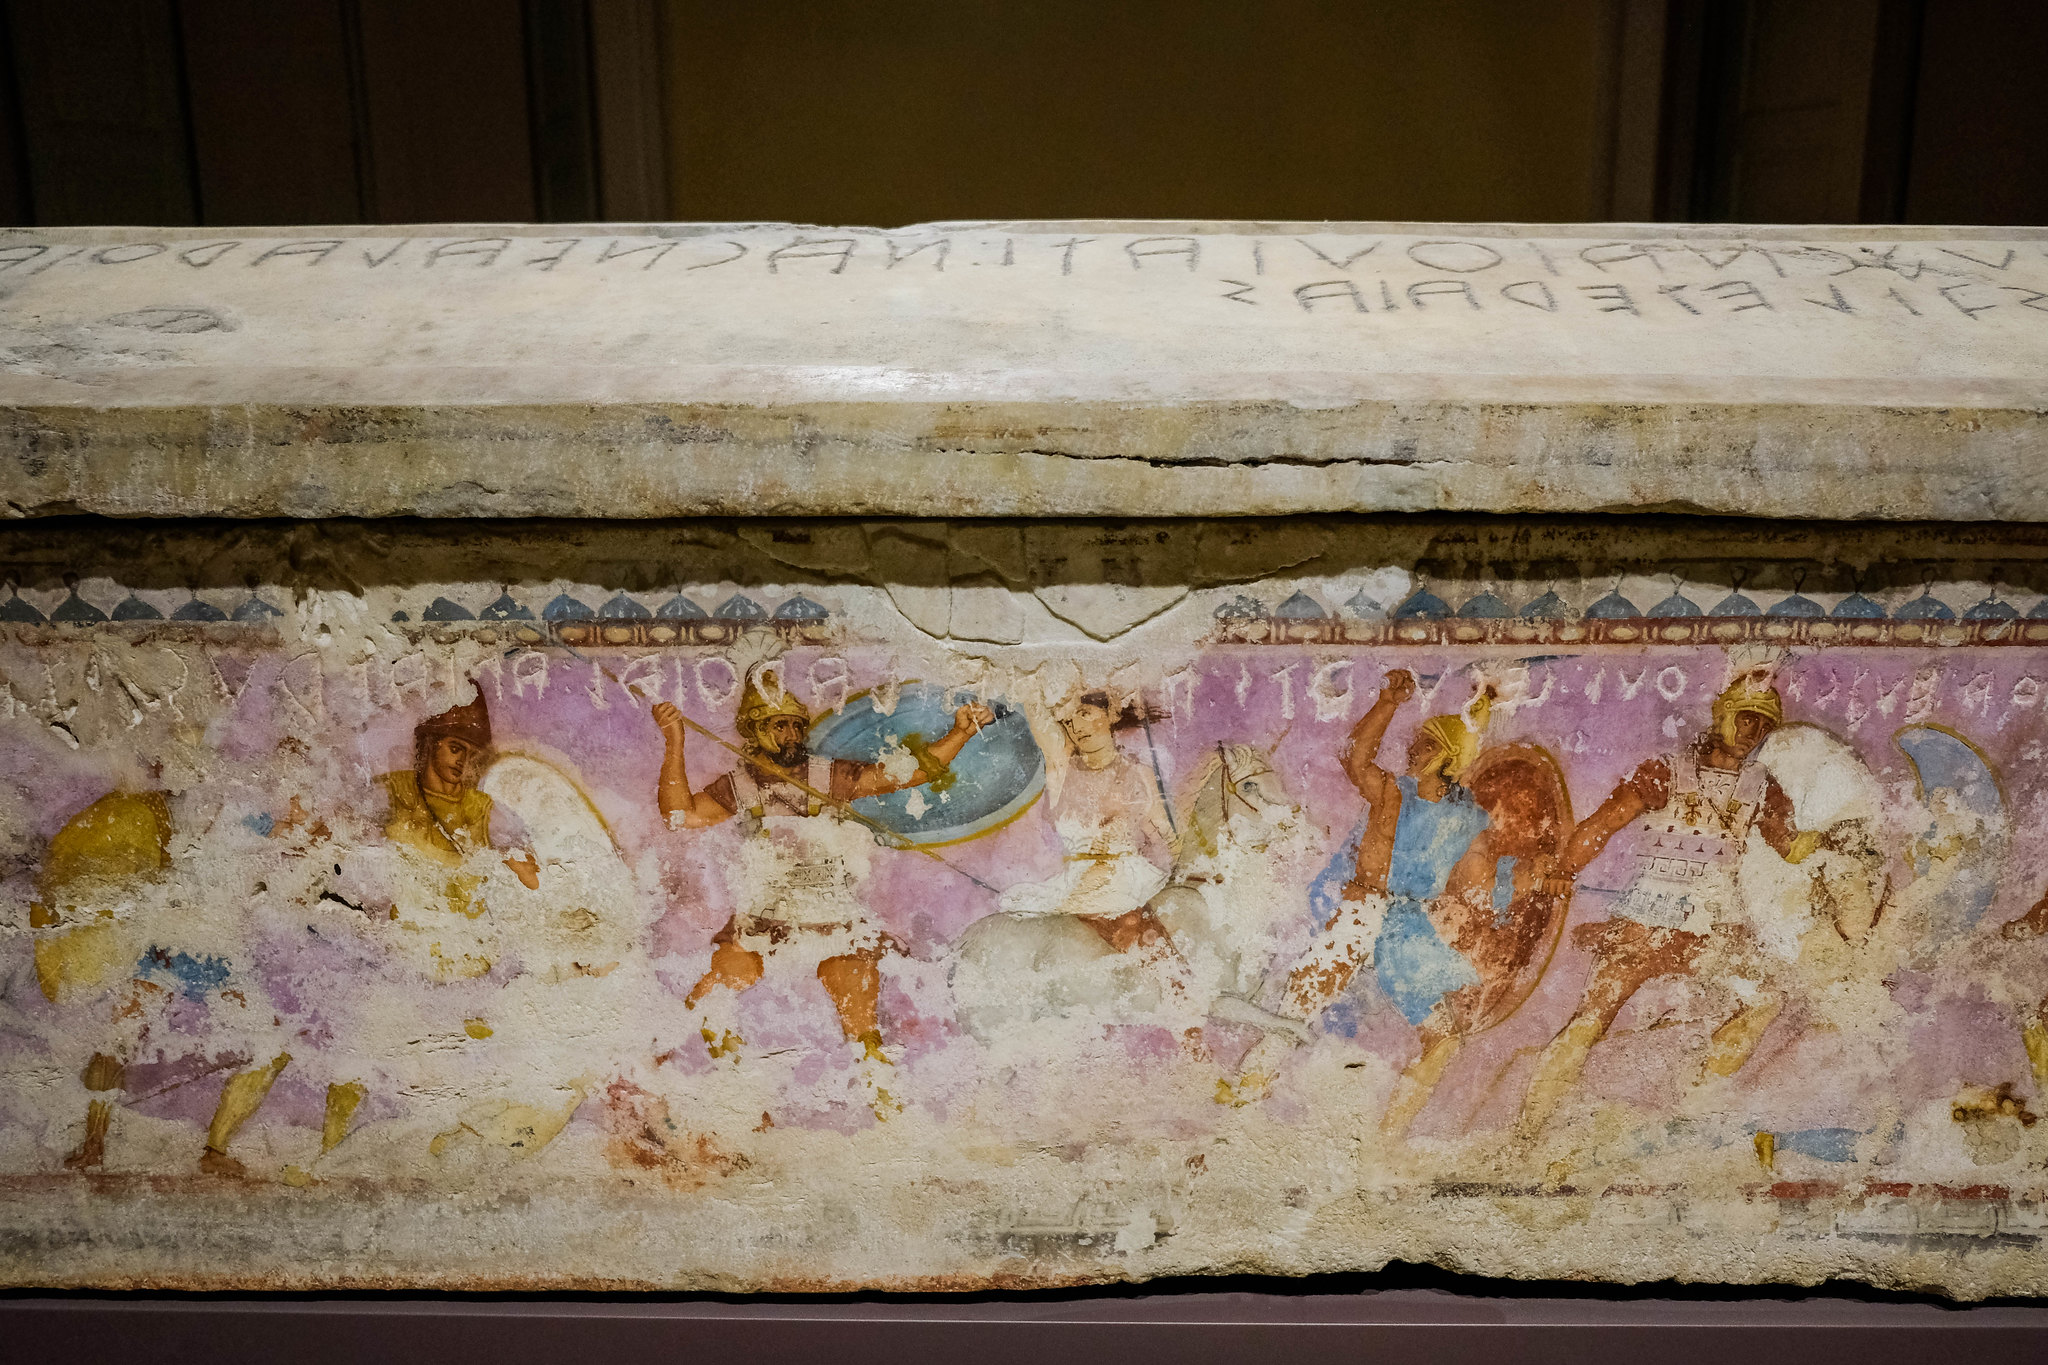 Beautiful painted sarcophagus!